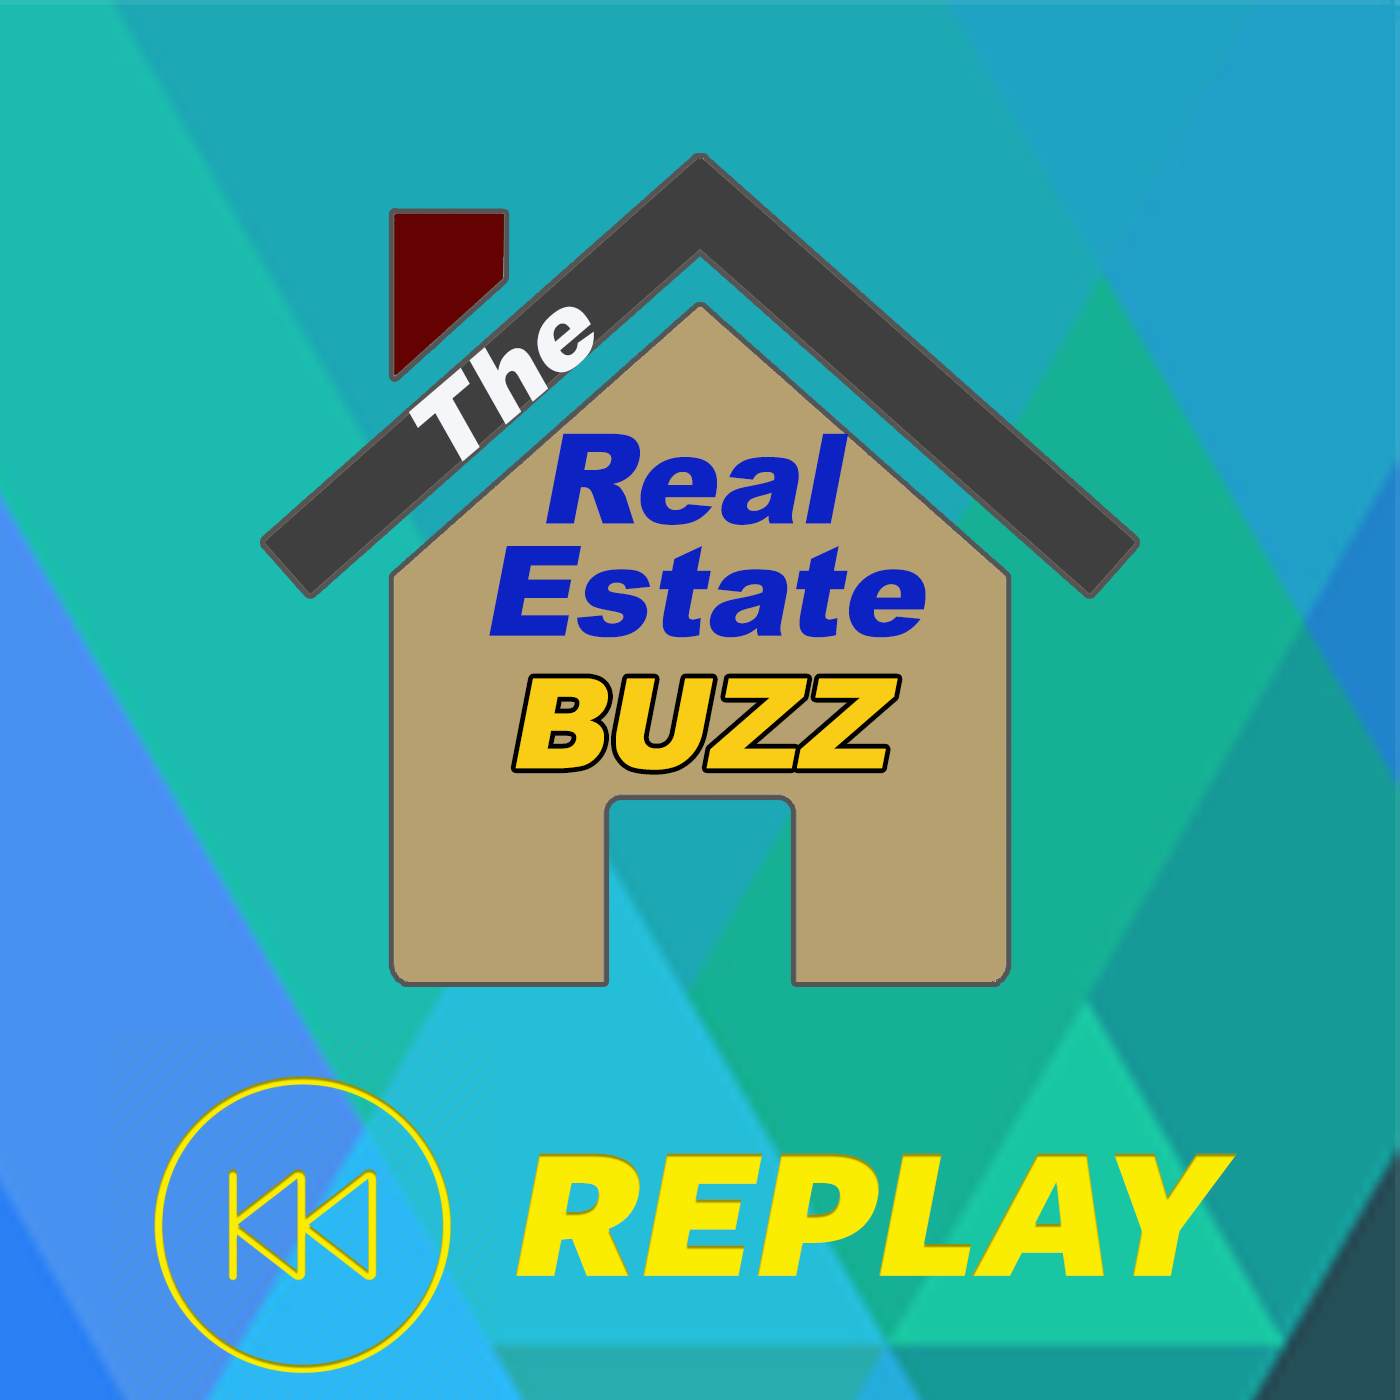 The Real Estate Buzz